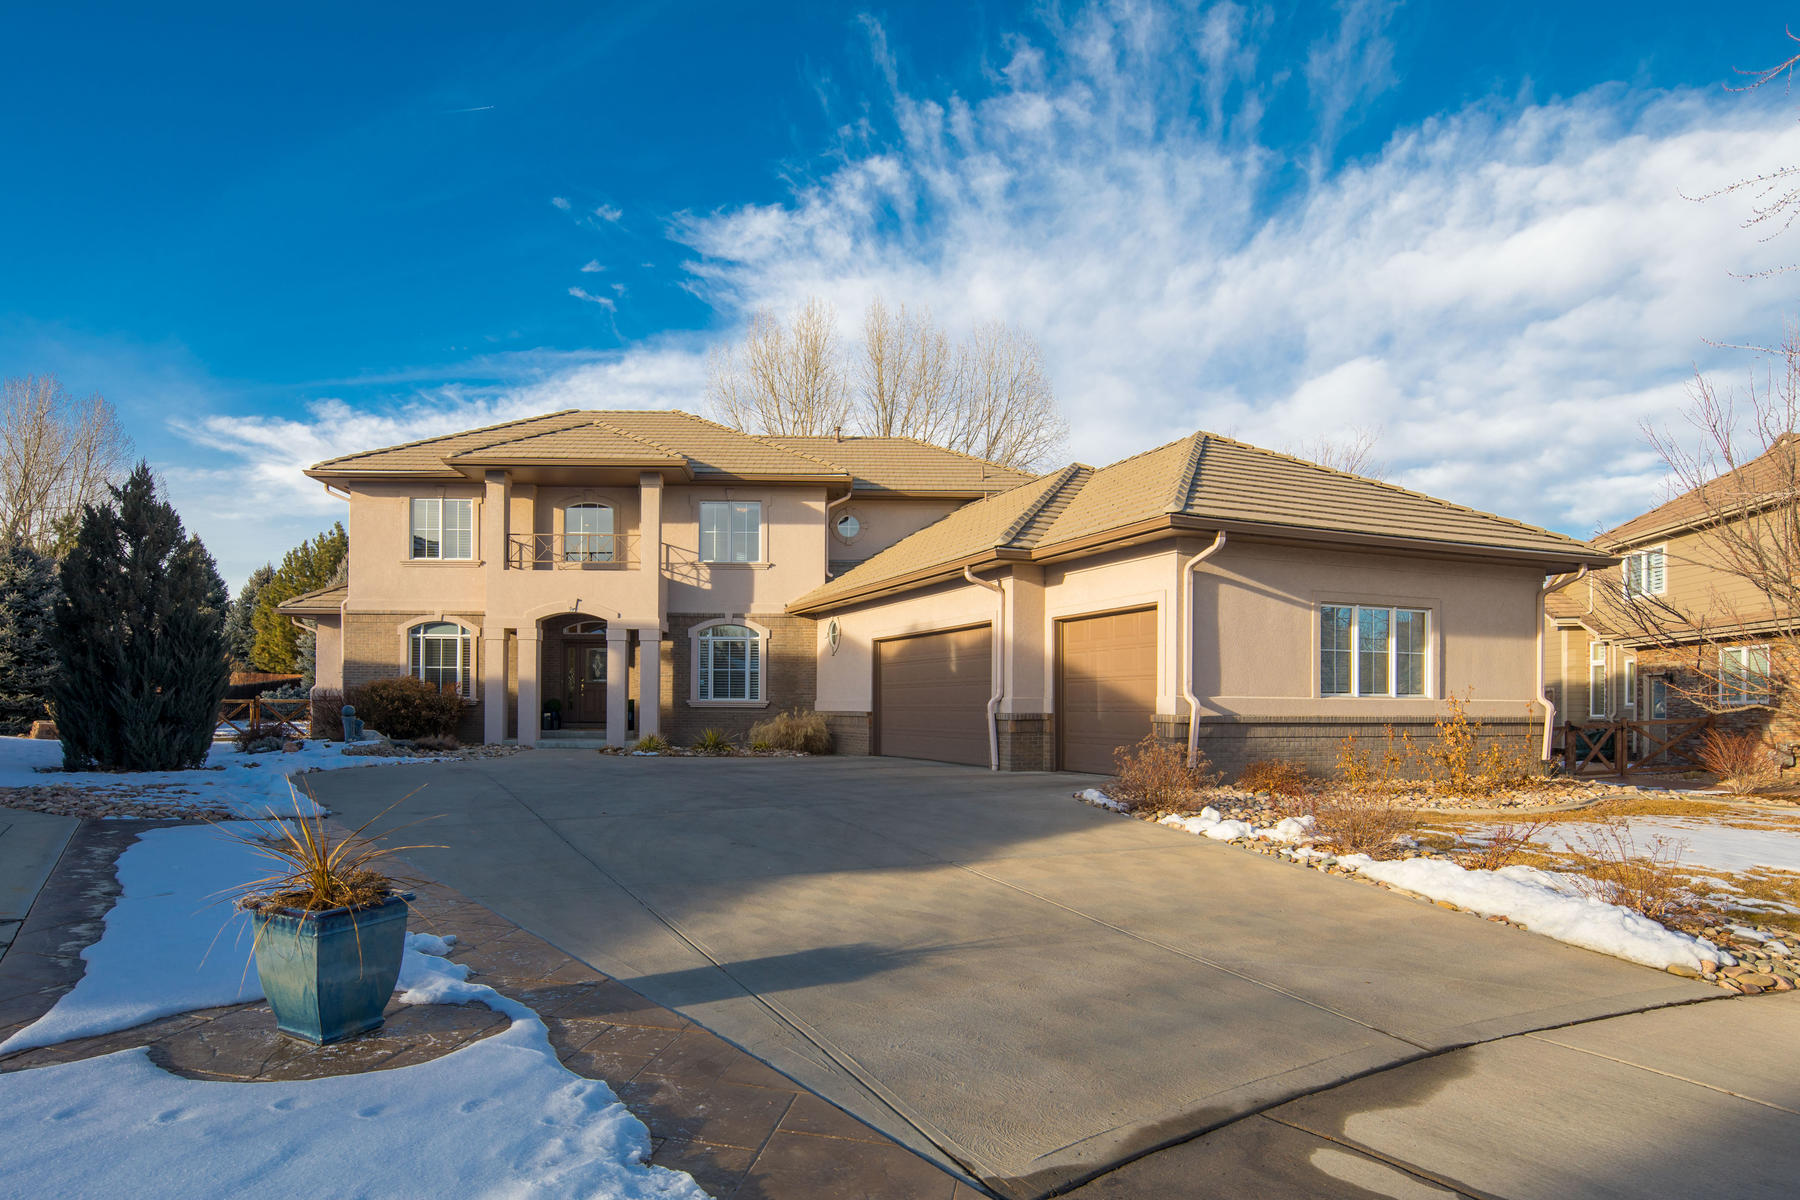 Single Family Home for Active at An Entertainer's Delight 2805 W 115th Dr Westminster, Colorado 80234 United States